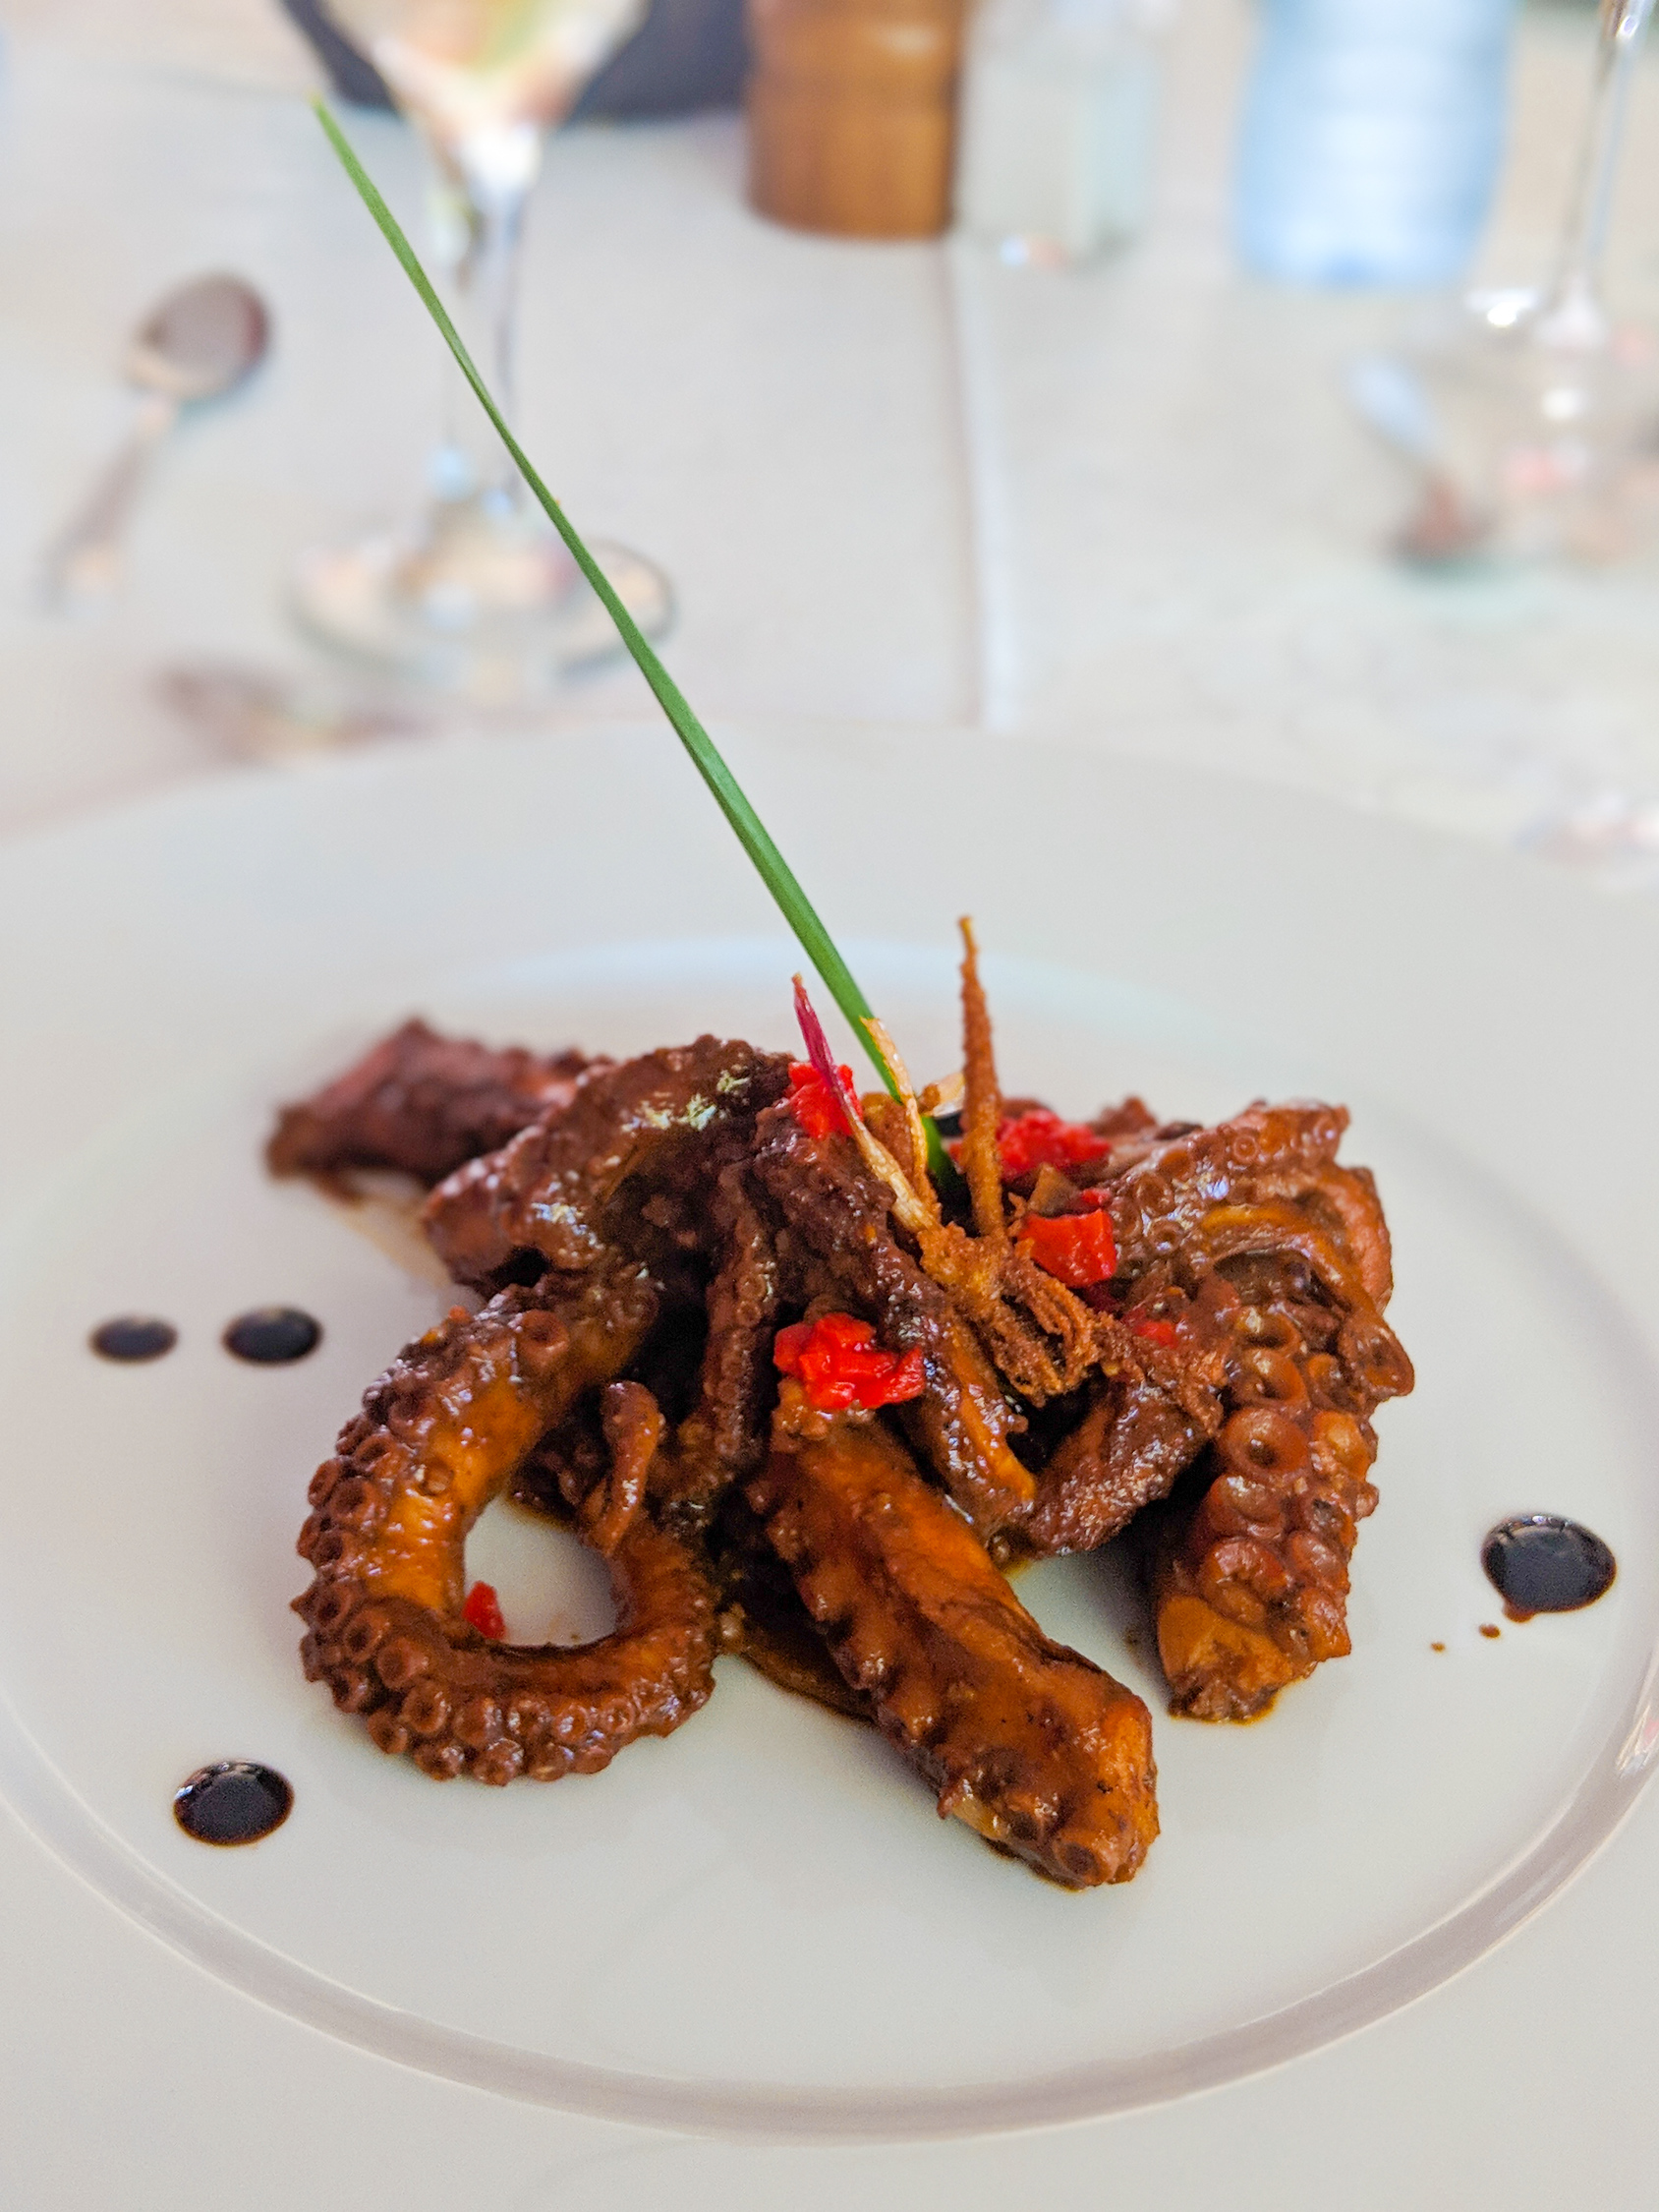 Grilled octopus on a white plate at Las Terrazas restaurant